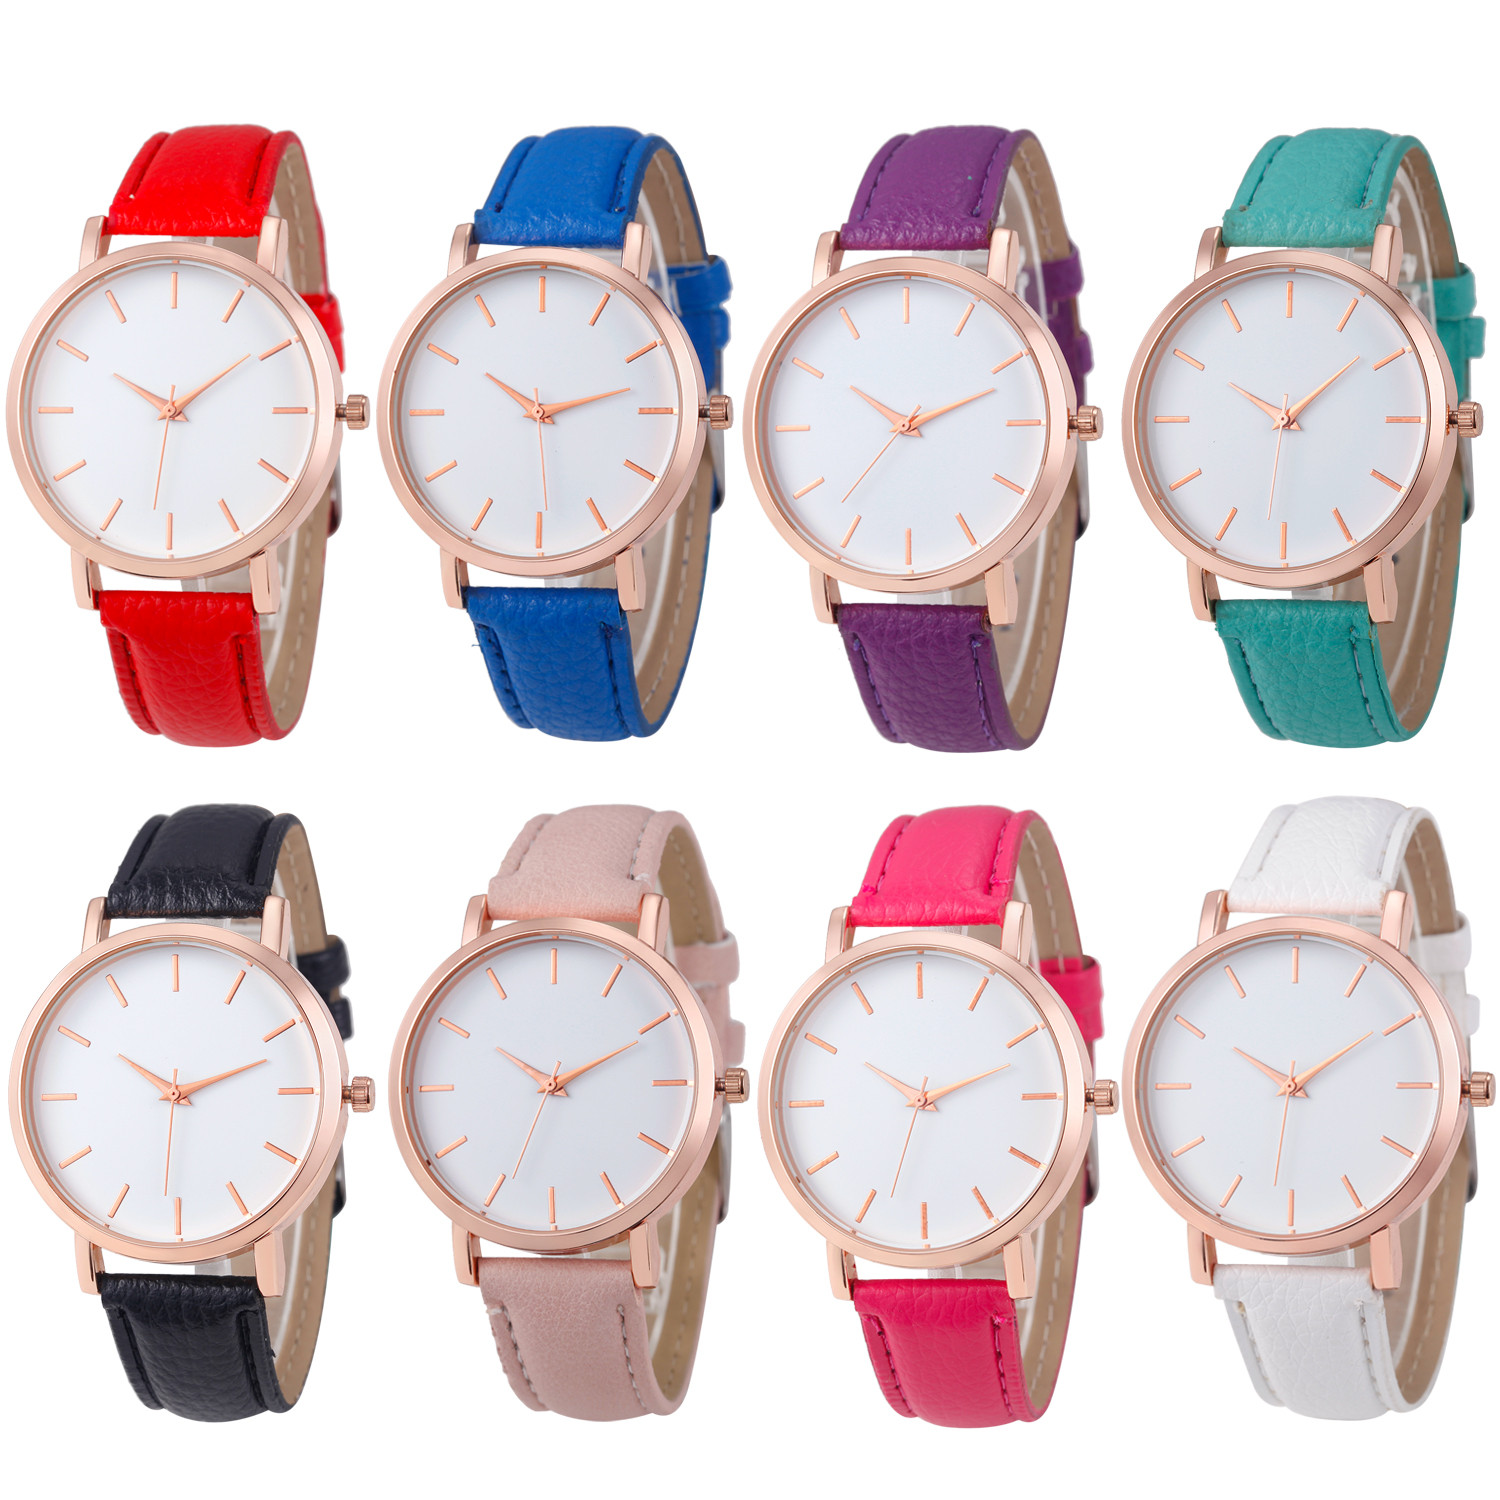 Fashion Lady Watch with Leather Strap